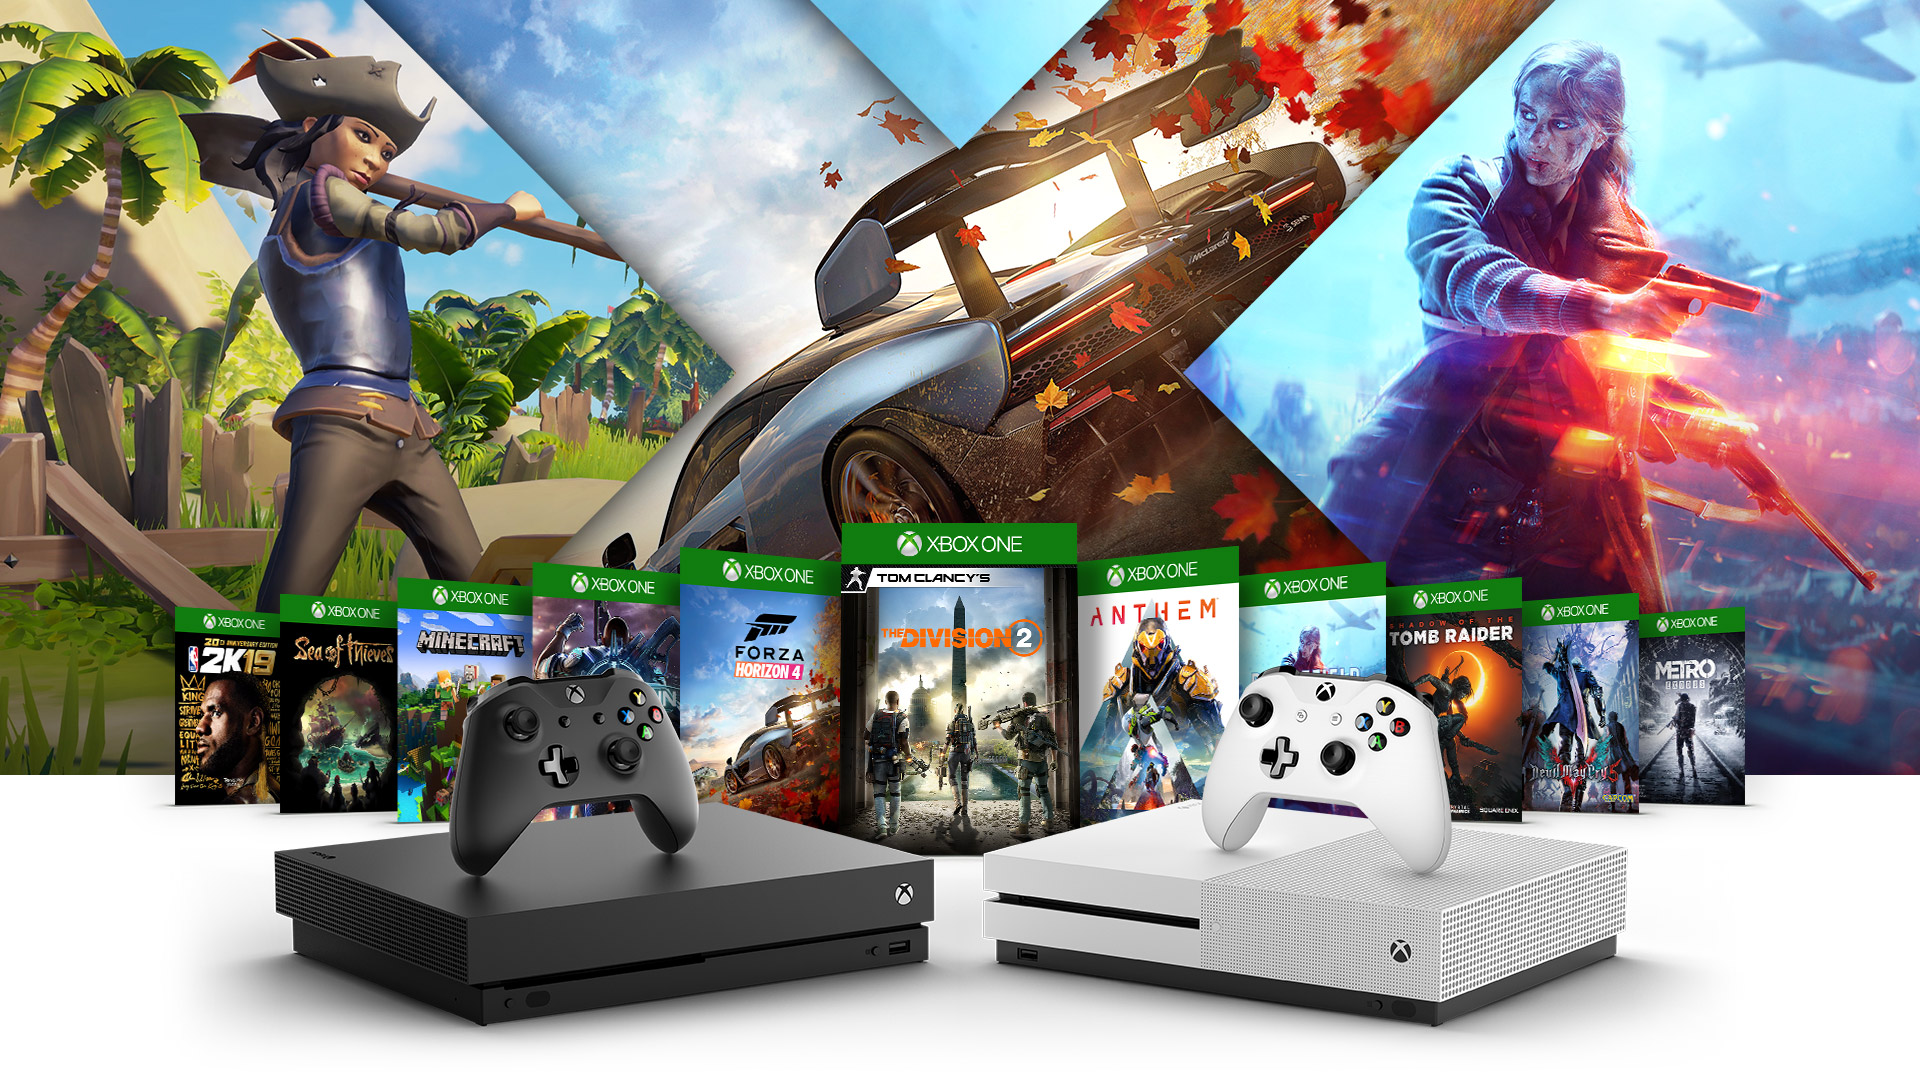 Πλαϊνή όψη του Xbox One X, του Xbox One S και του Xbox One S All Digital Edition που περιβάλλονται από box shot των Crackdown 3, Sea of Thieves, Minecraft, Madden 19, 2K19, Forza Horizon 4, Fallout 76, Battlefield Five, Shadow of the Tomb Raider, PlayUnknown Battlegrounds και State of Decay 2